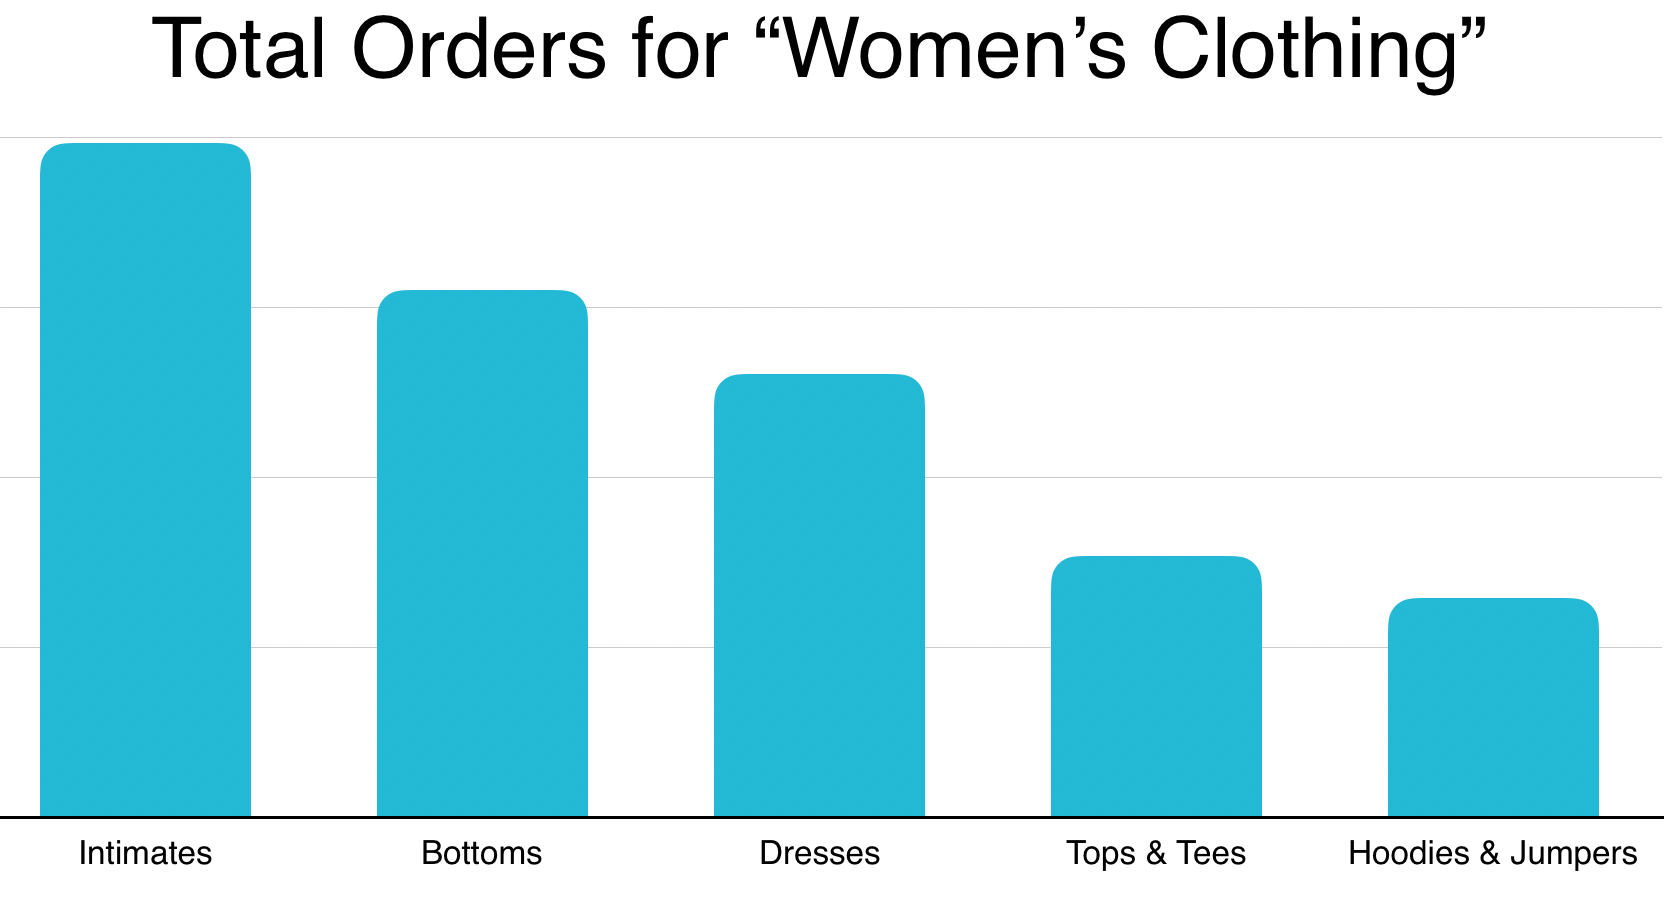 2019 Niche Canadian Markets for Women's Clothing